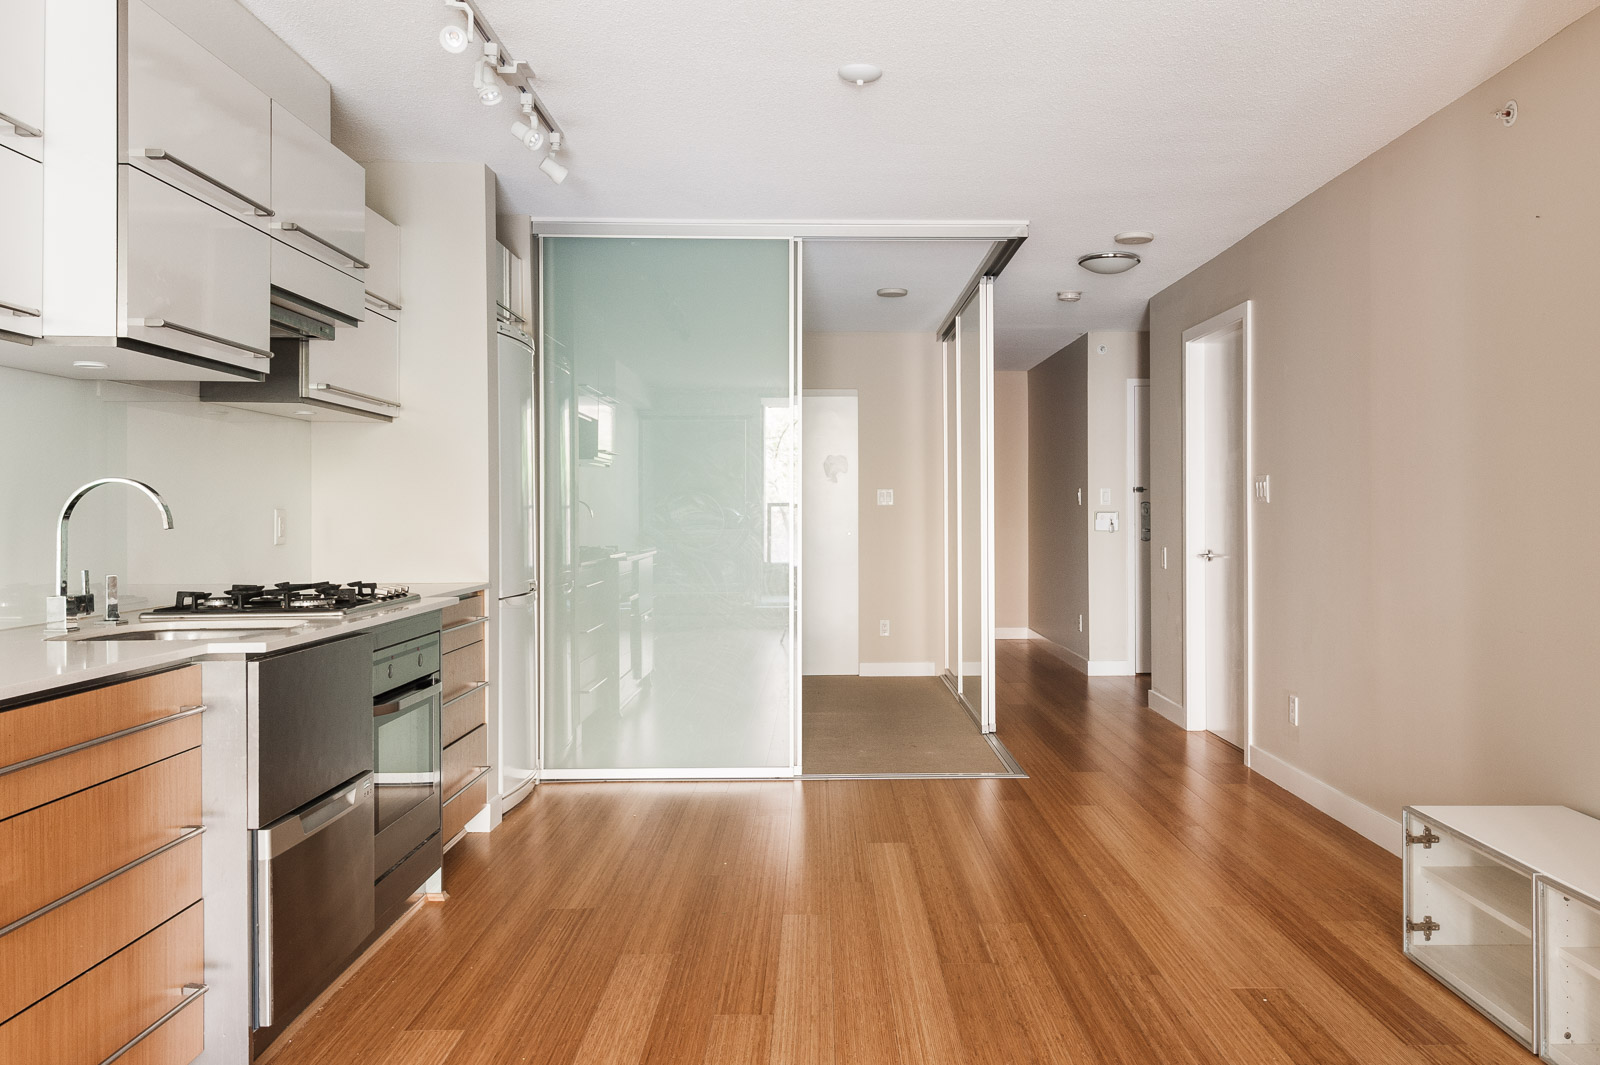 A frosted glass sliding door leads to another bedroom in an unfurnished Vancouver condo rental.